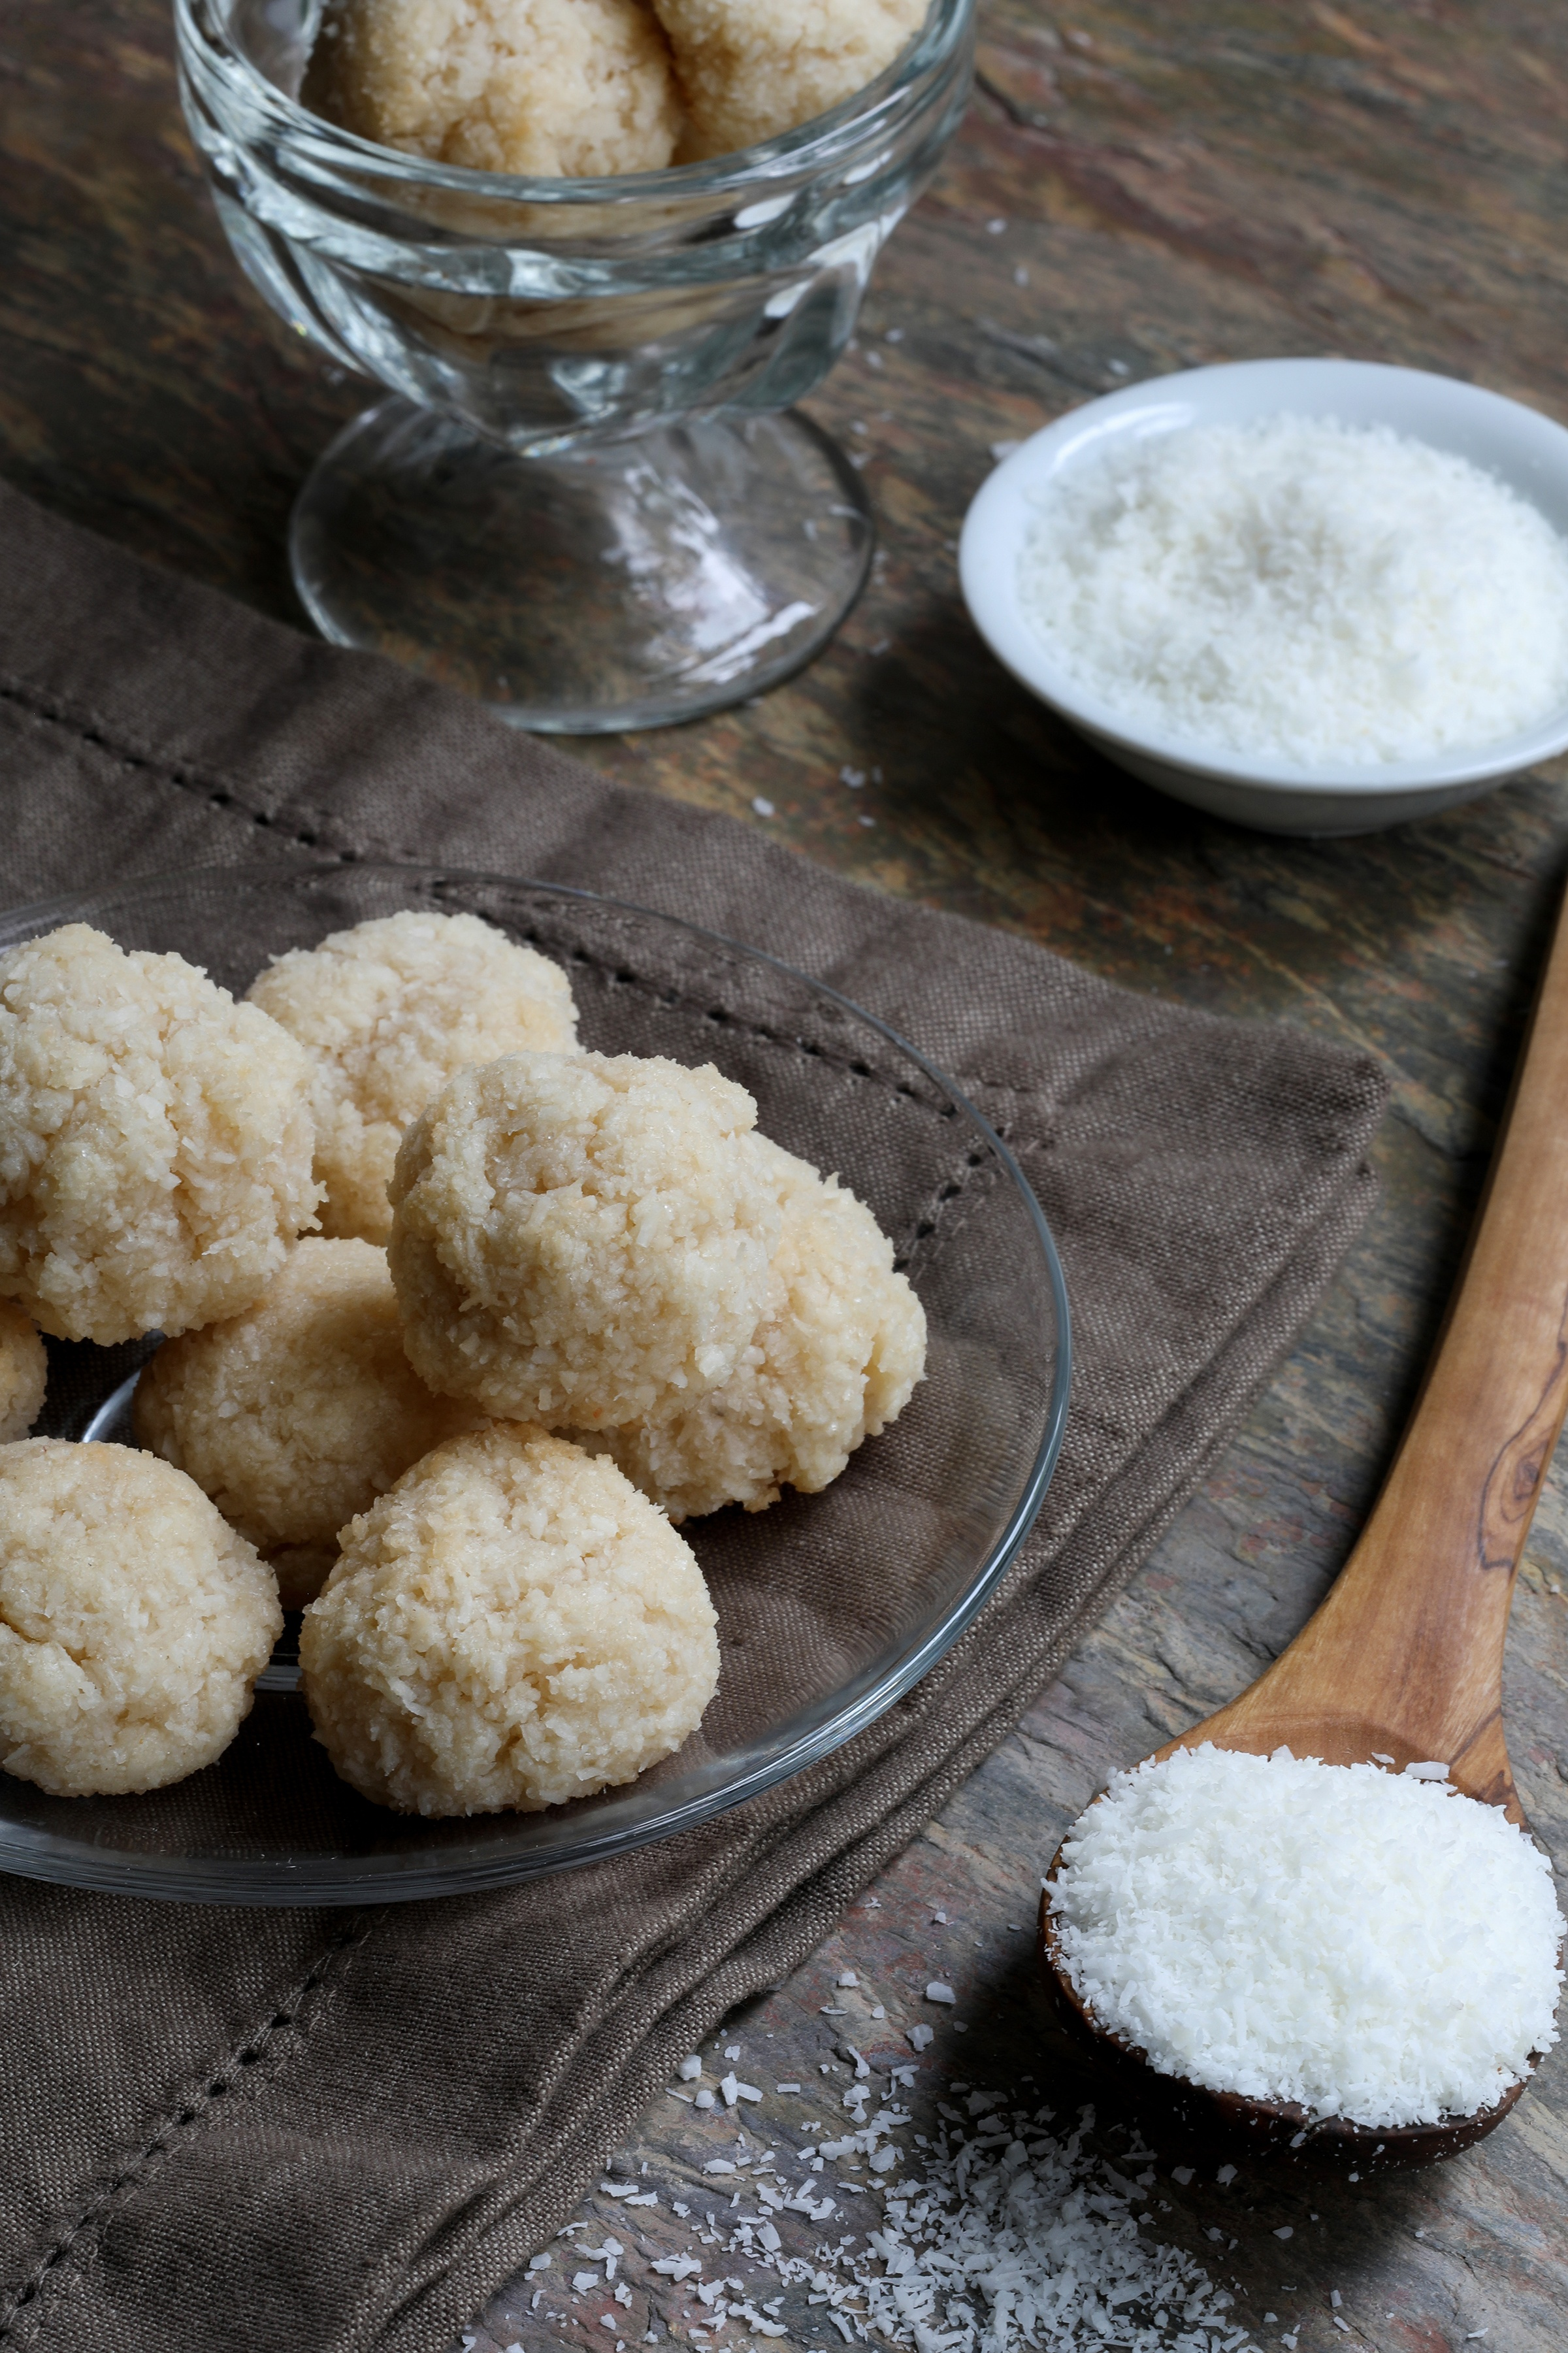 Organic coconut macaroon cookie balls on wood table with spoonful of coconut flakes